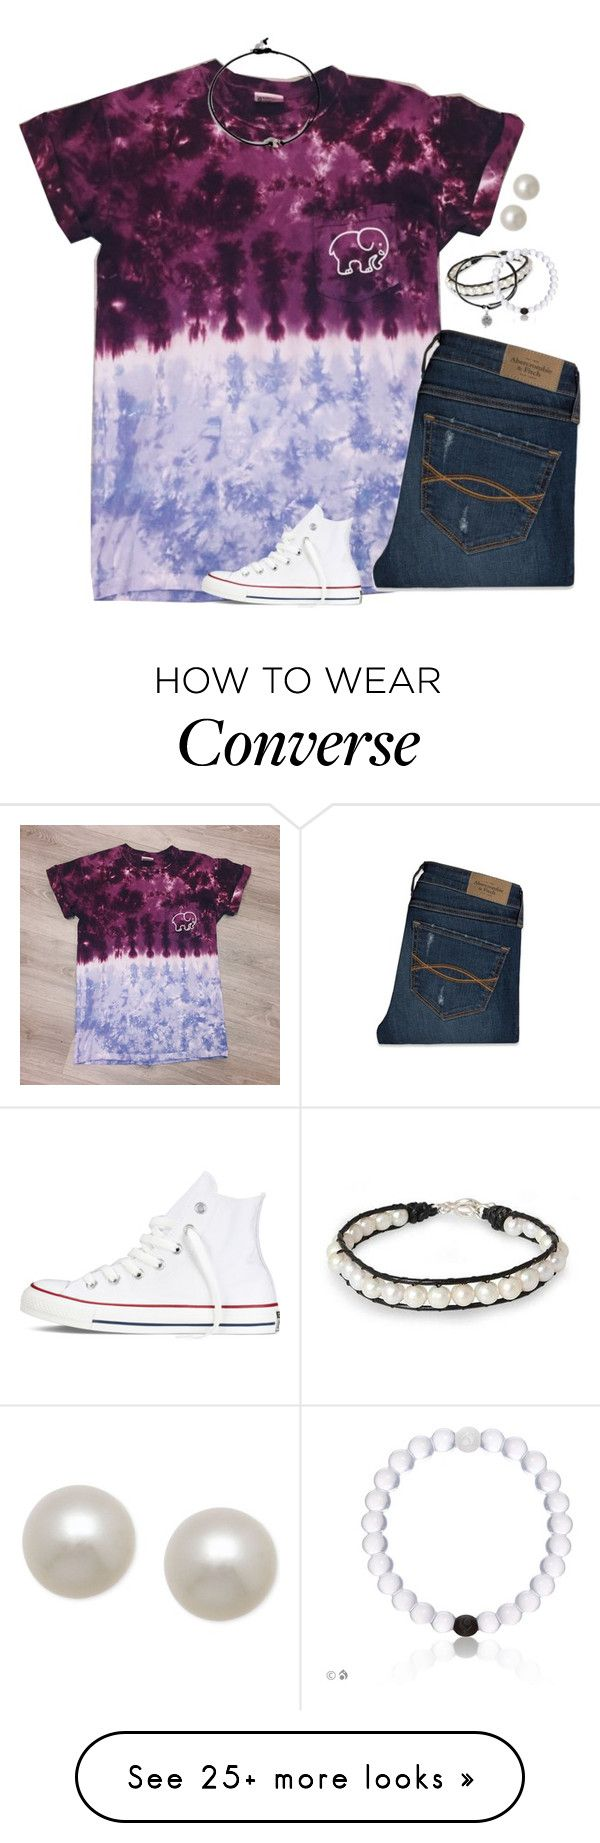 """that feeling you get when you know he actually cares."" by isabella813 on Polyvore featuring NOVICA, Alex and Ani, Abercrombie & Fitch, Honora and Converse"